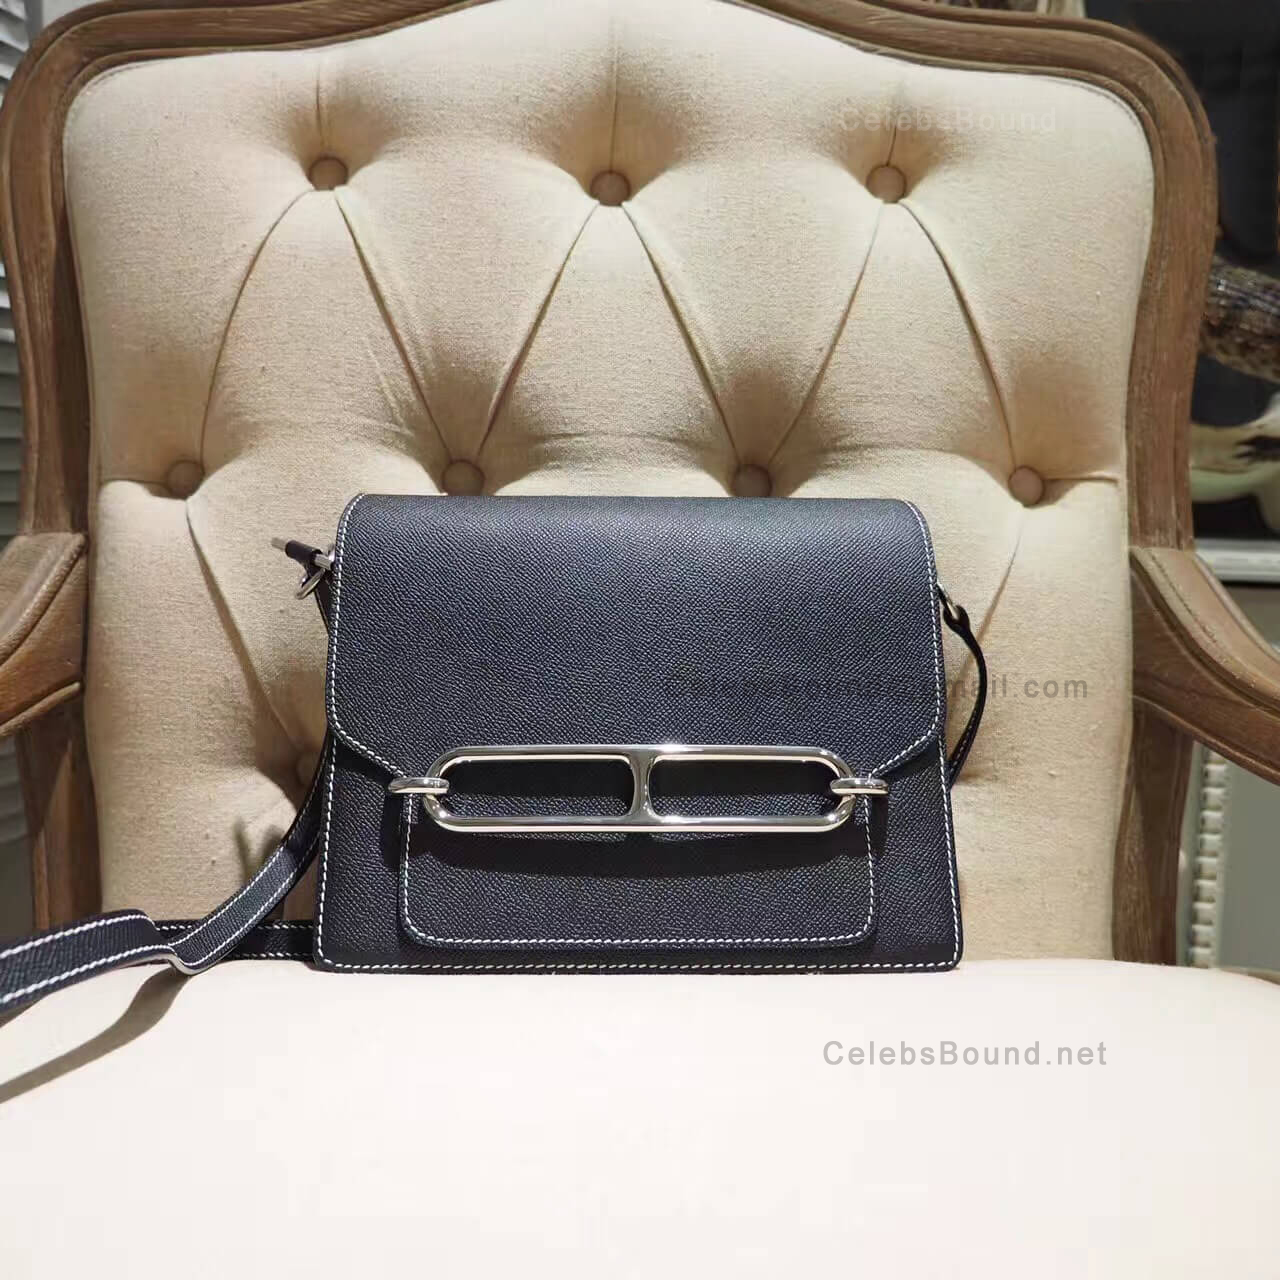 Replica Hermes Roulis 23 Bag in ck89 Noir Box PHW